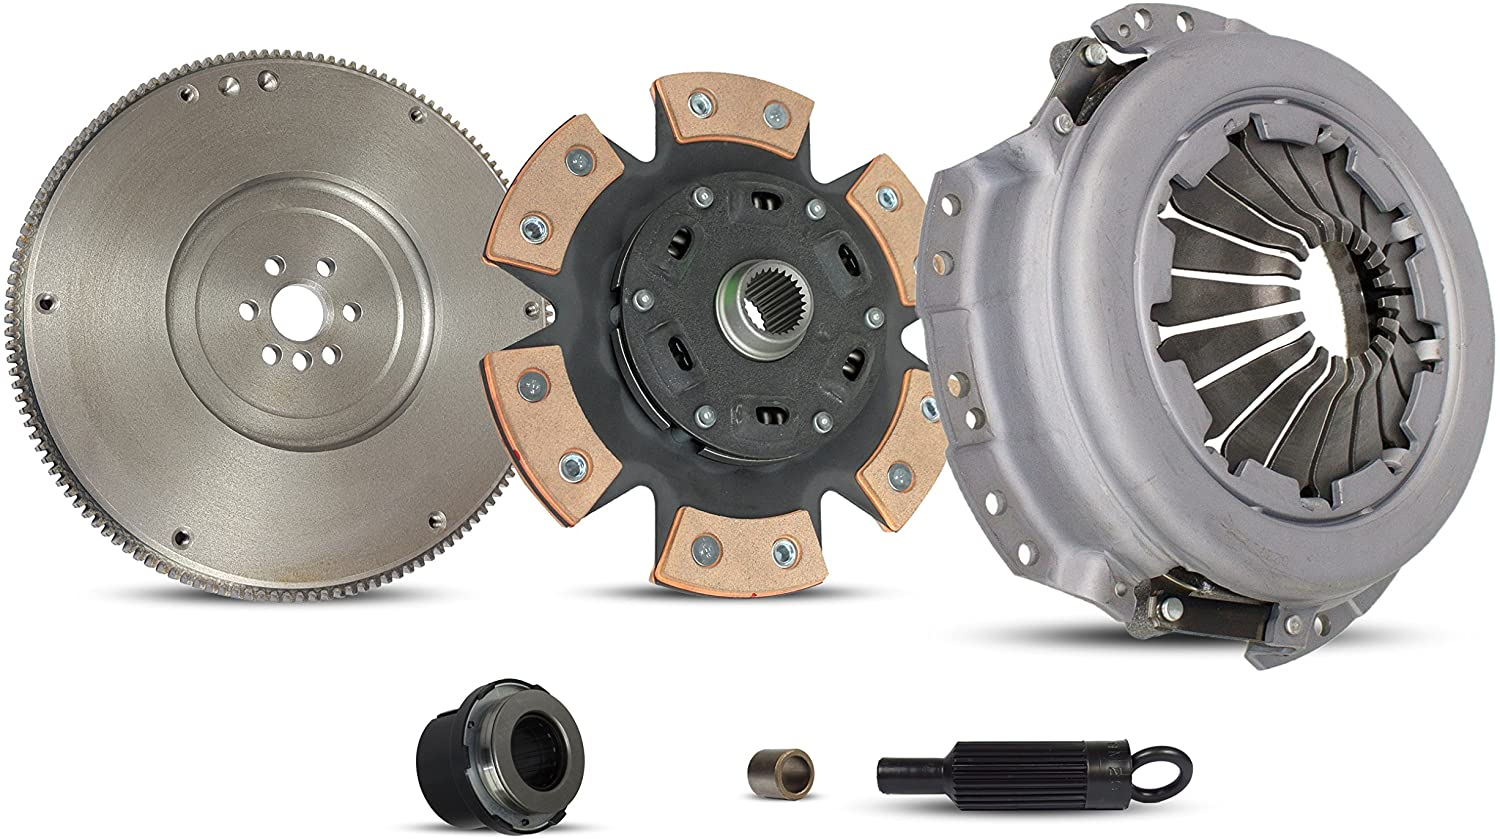 Clutch Kit With Flywheel Compatible With S10 HOMBRE SONOMA BASE LS XTREME SL SLS SLE XS 1996-2001 2.2L L4 GAS OHV Naturally Aspirated (6-Puck Clutch Disc Stage 2)